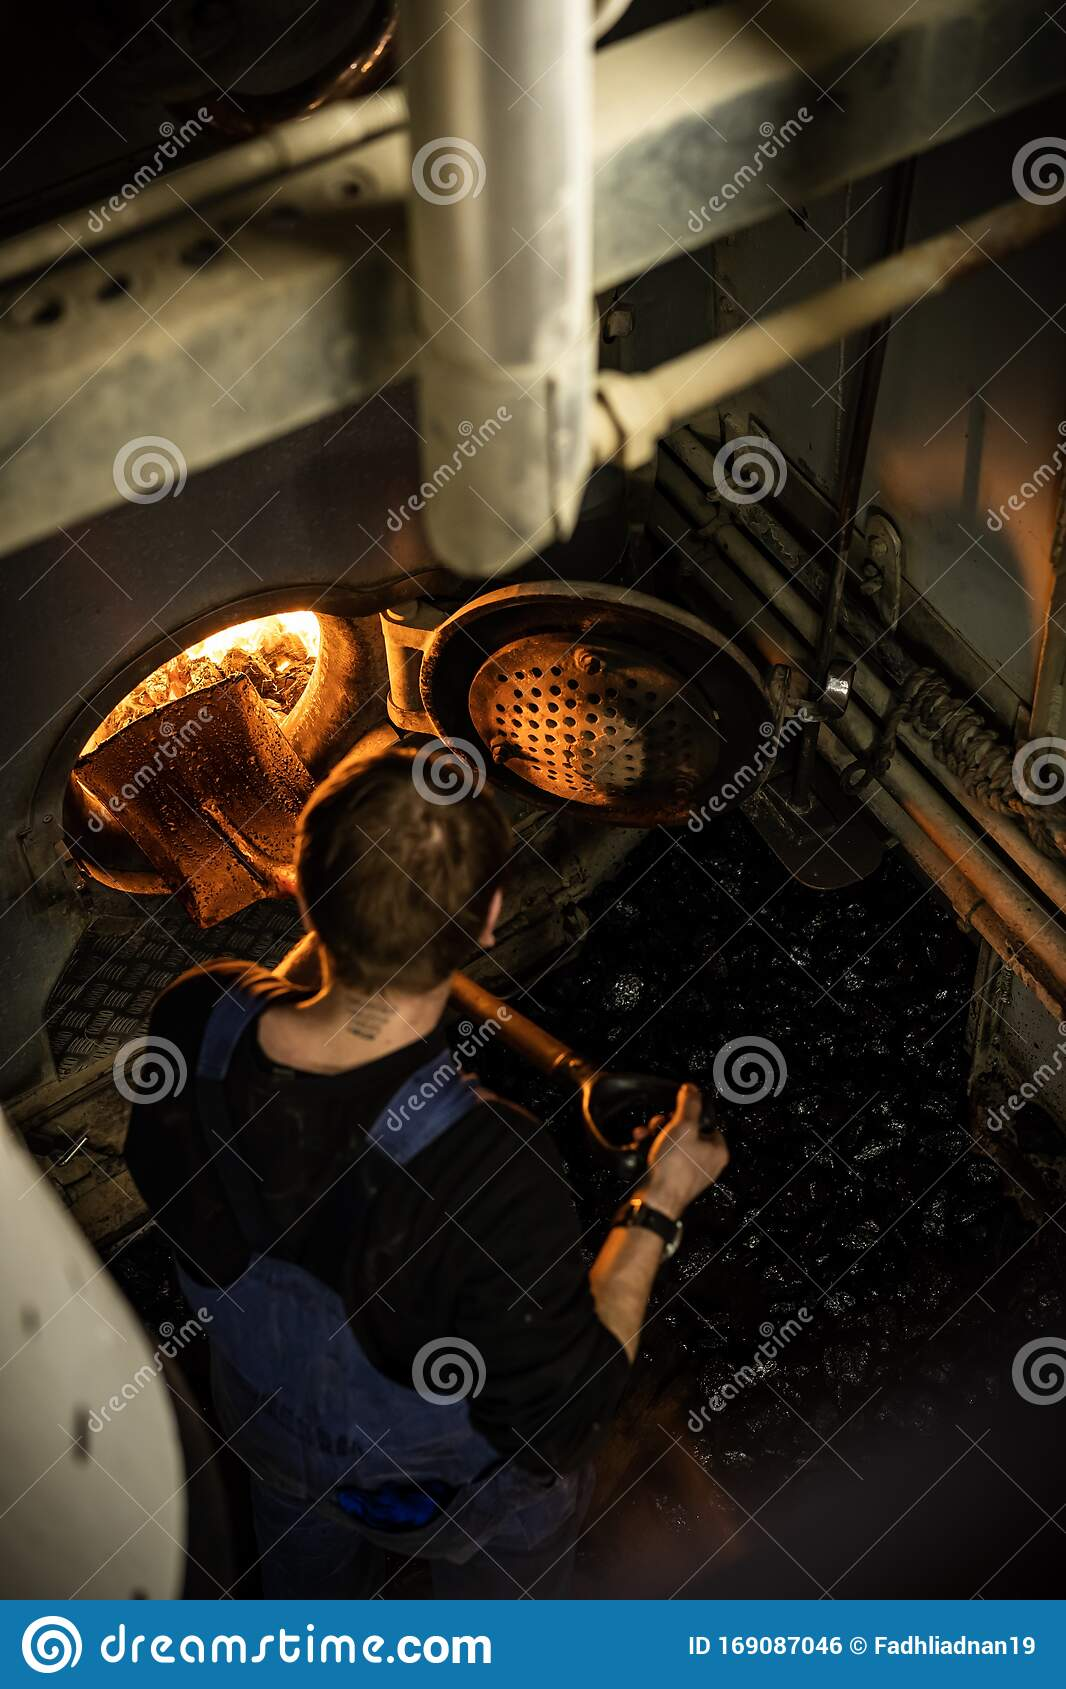 Steam Ship Engine Room: A Worker Insert A Coal Inside The Engine Of Coaled Power